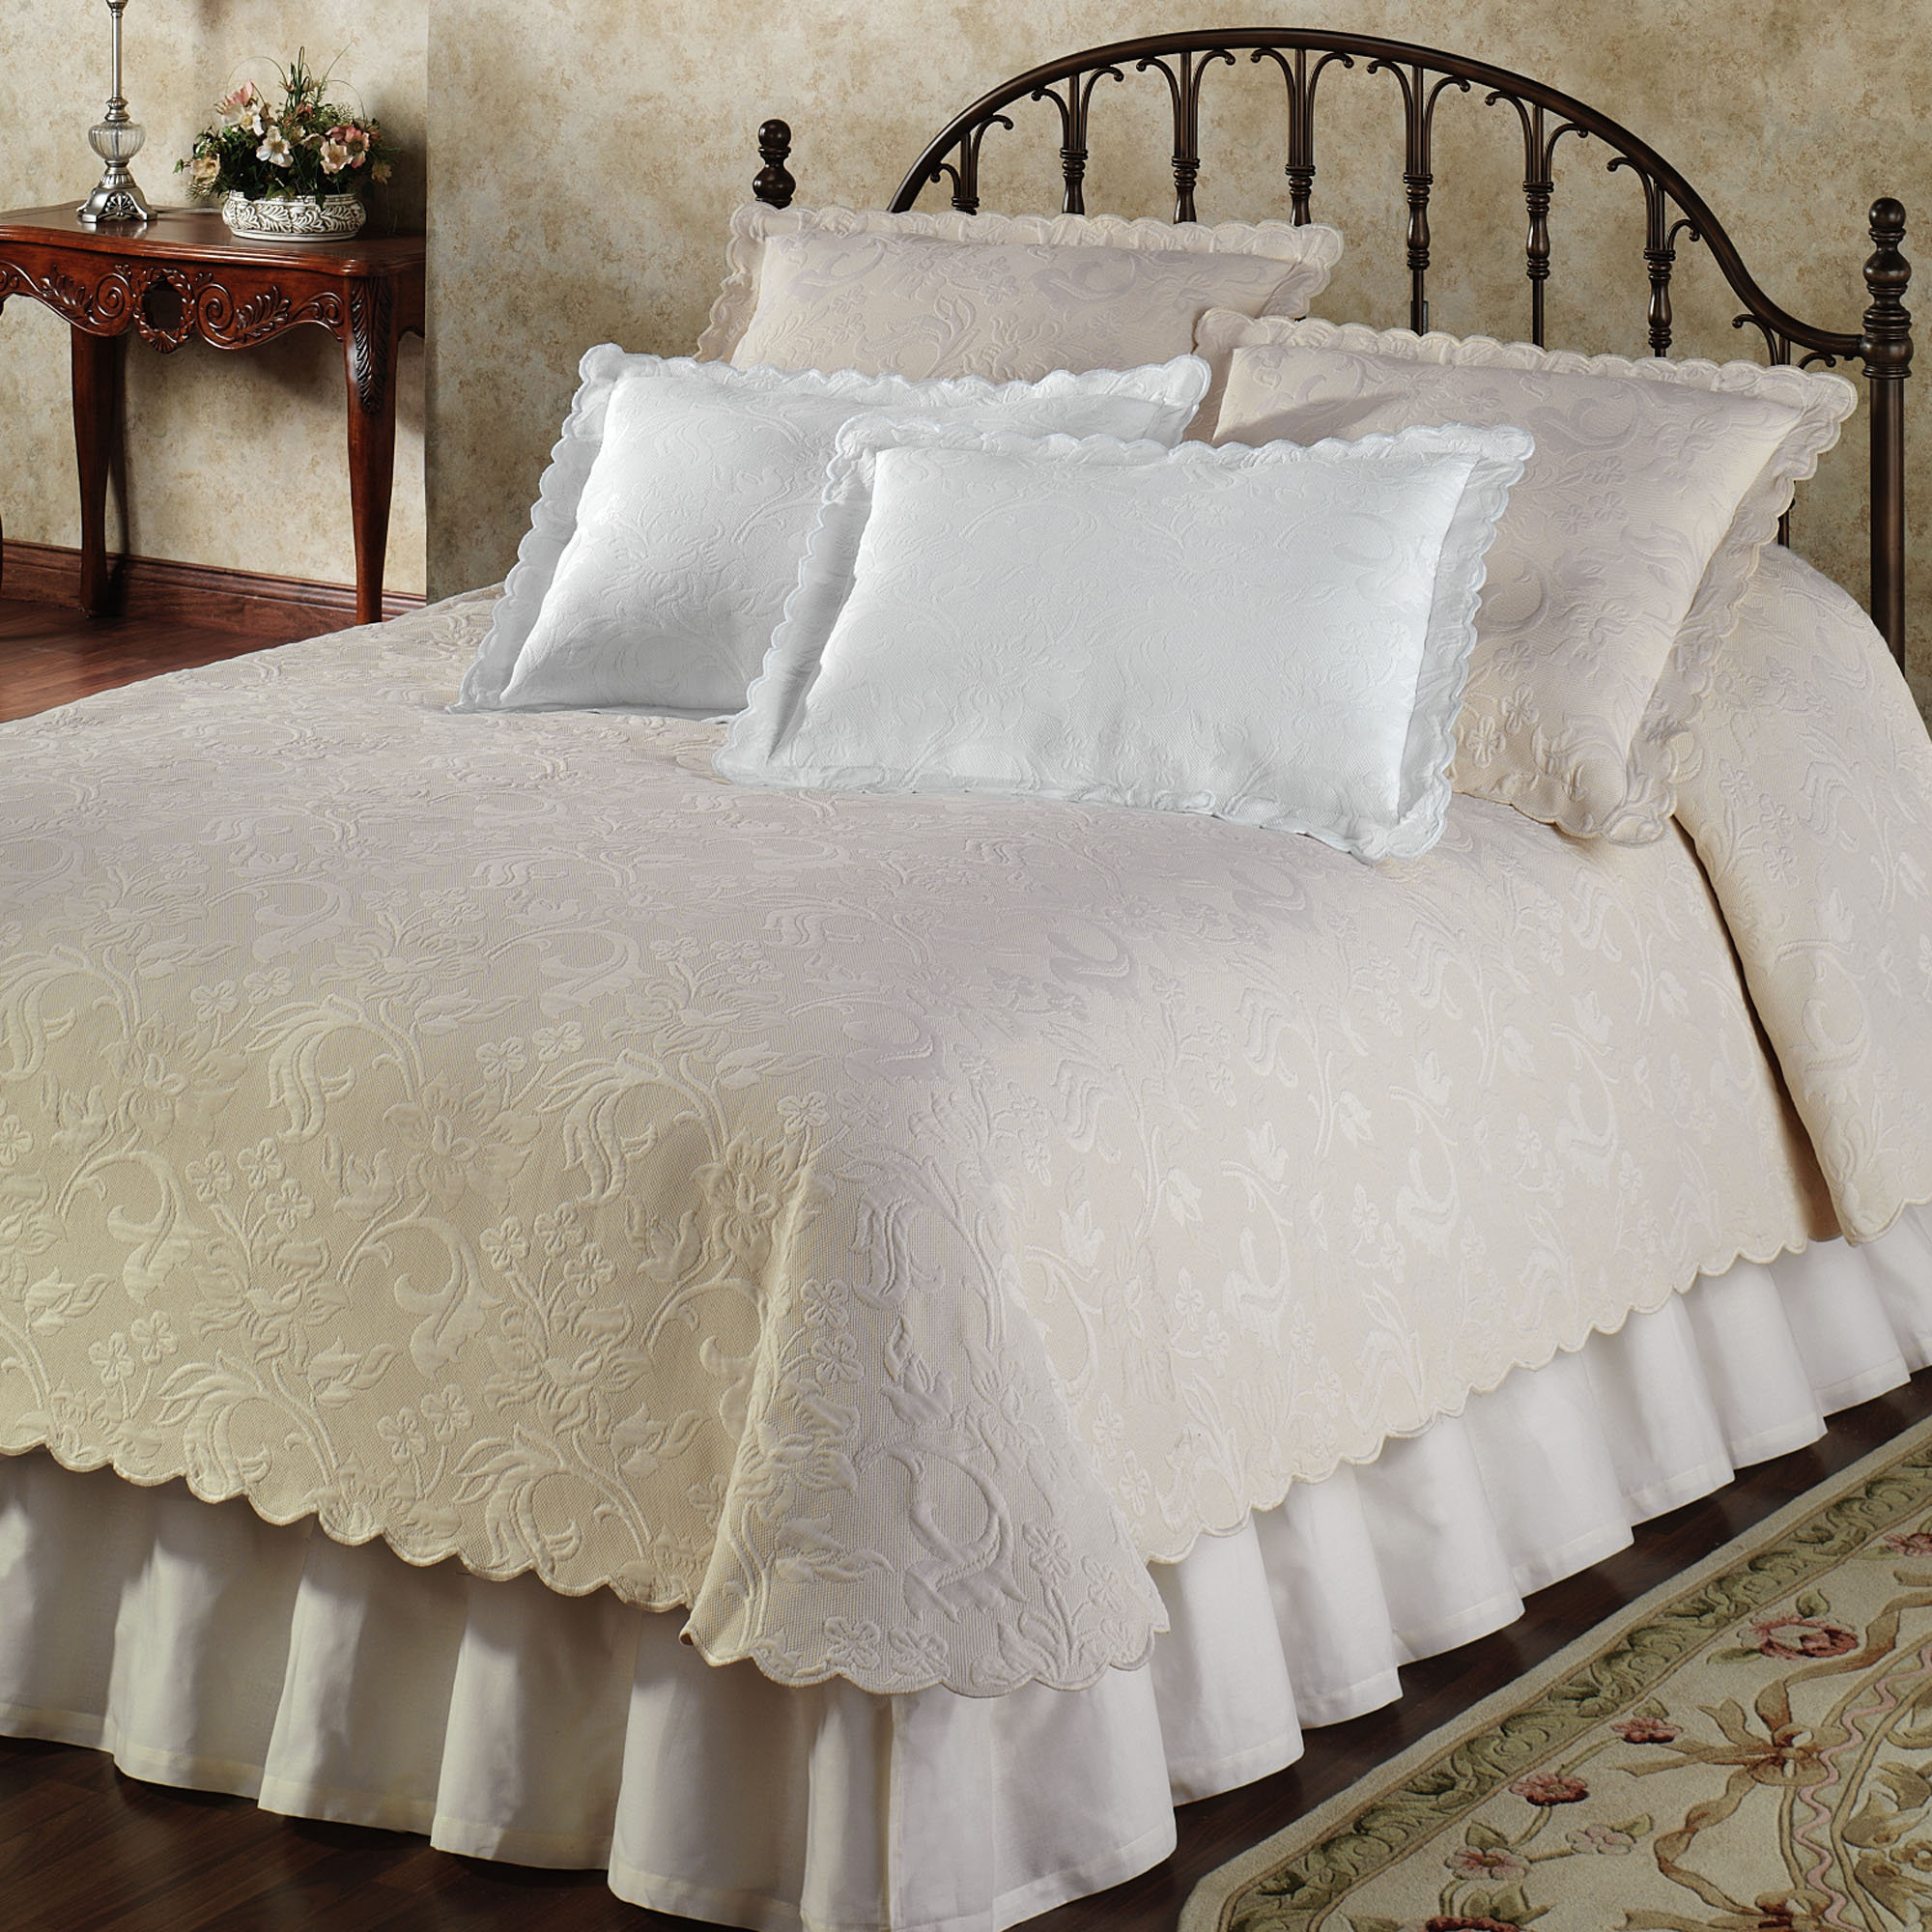 Coverlet Vs Quilt What Is Significant Difference Homesfeed